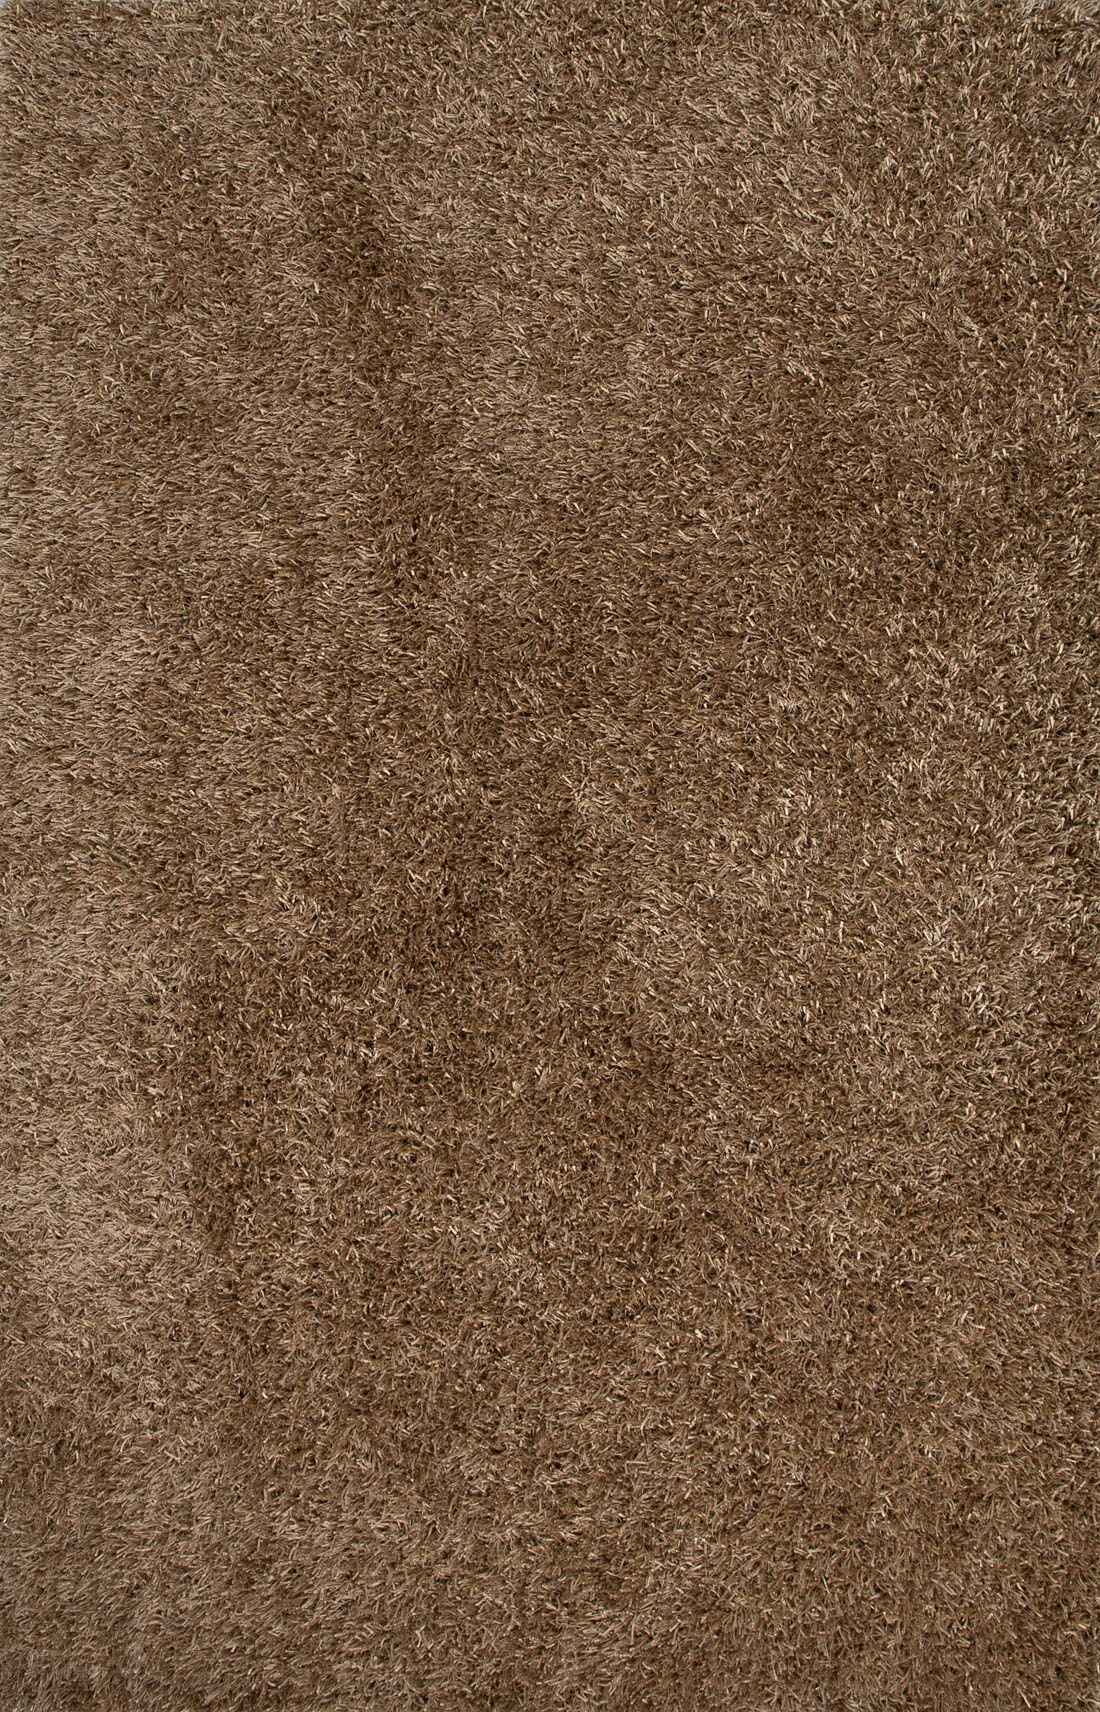 Woodside Taupe/Tan Solid Area Rug Rug Size: 3'6